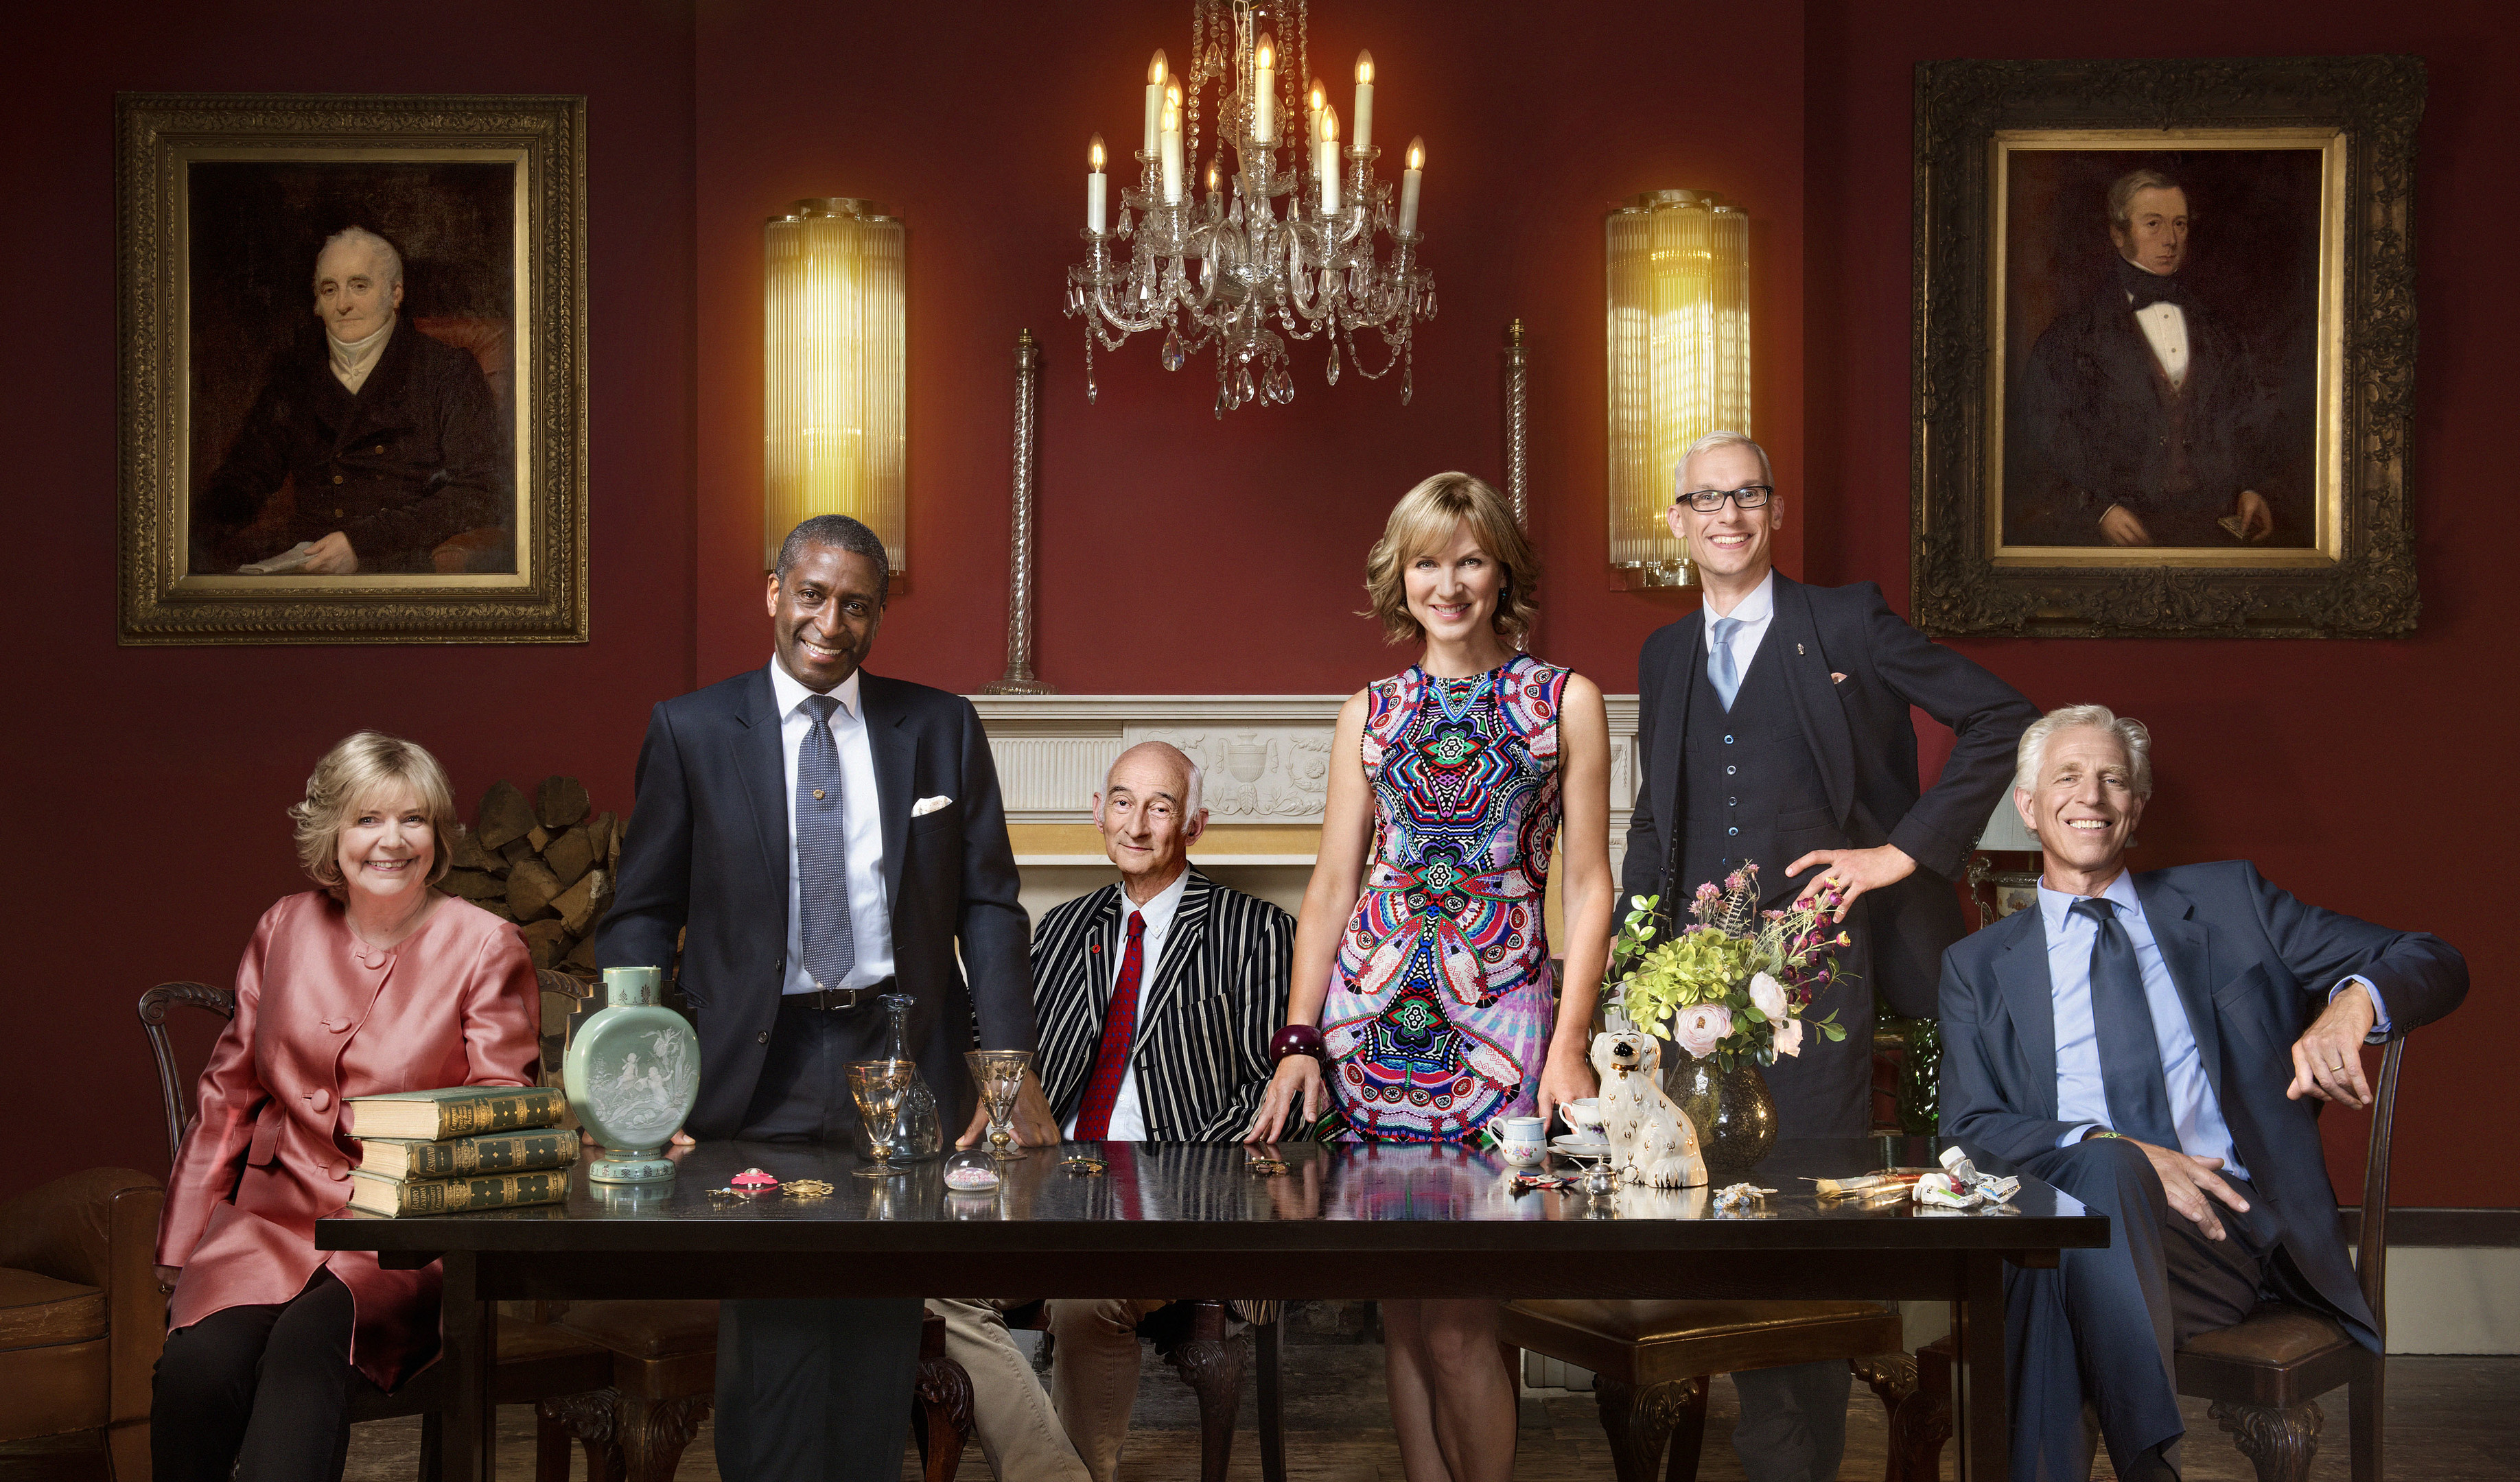 Judith Miller, Lennox Cato, Paul Atterbury, Fiona Bruce, Mark Hill and Rupert Maas from Antiques Roadshow.